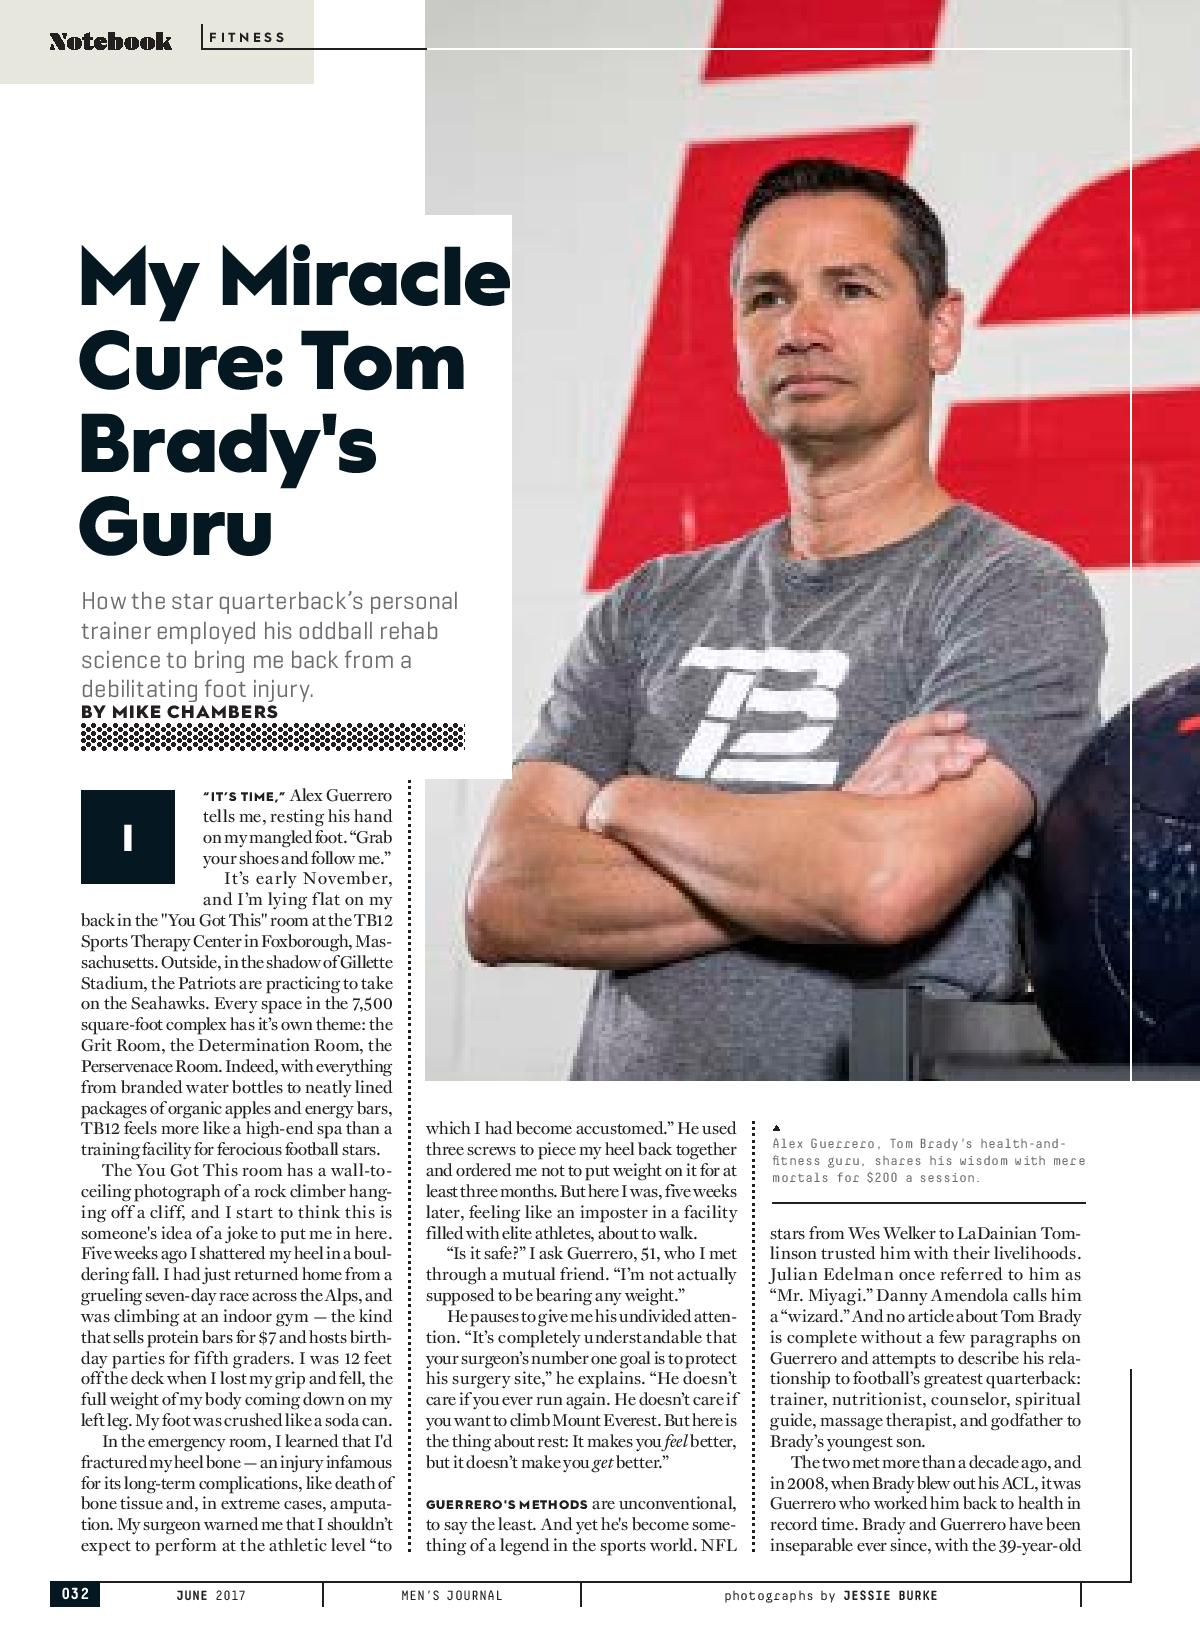 M0617_NB_TomBradyMiracle (2)-page-001.jpg